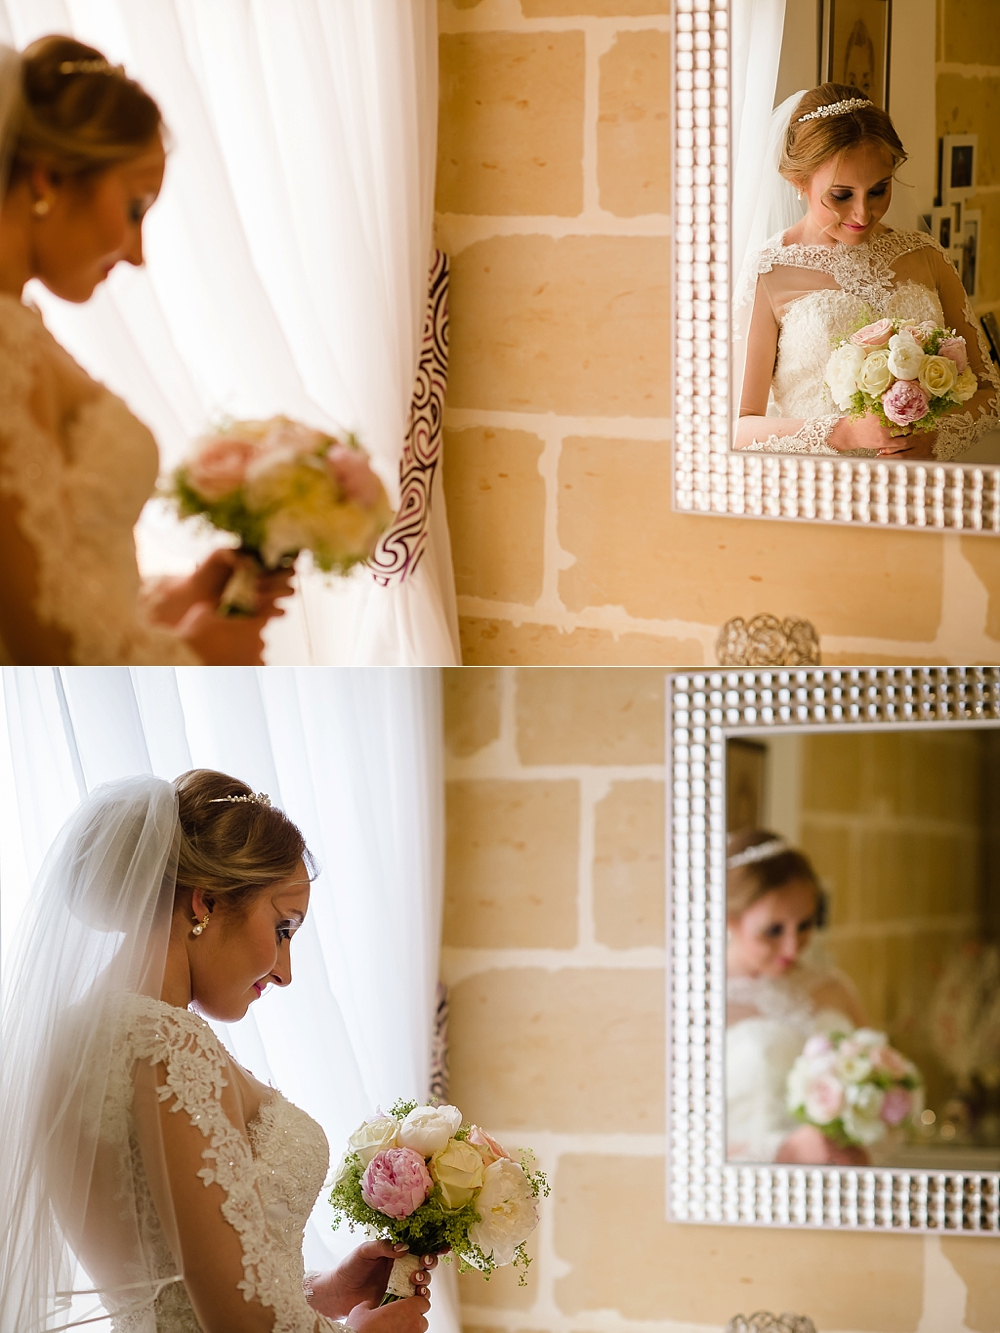 Valentina & Dimitri - Villa Bologna - Wedding Photography Malta - Shane P. Watts Photography